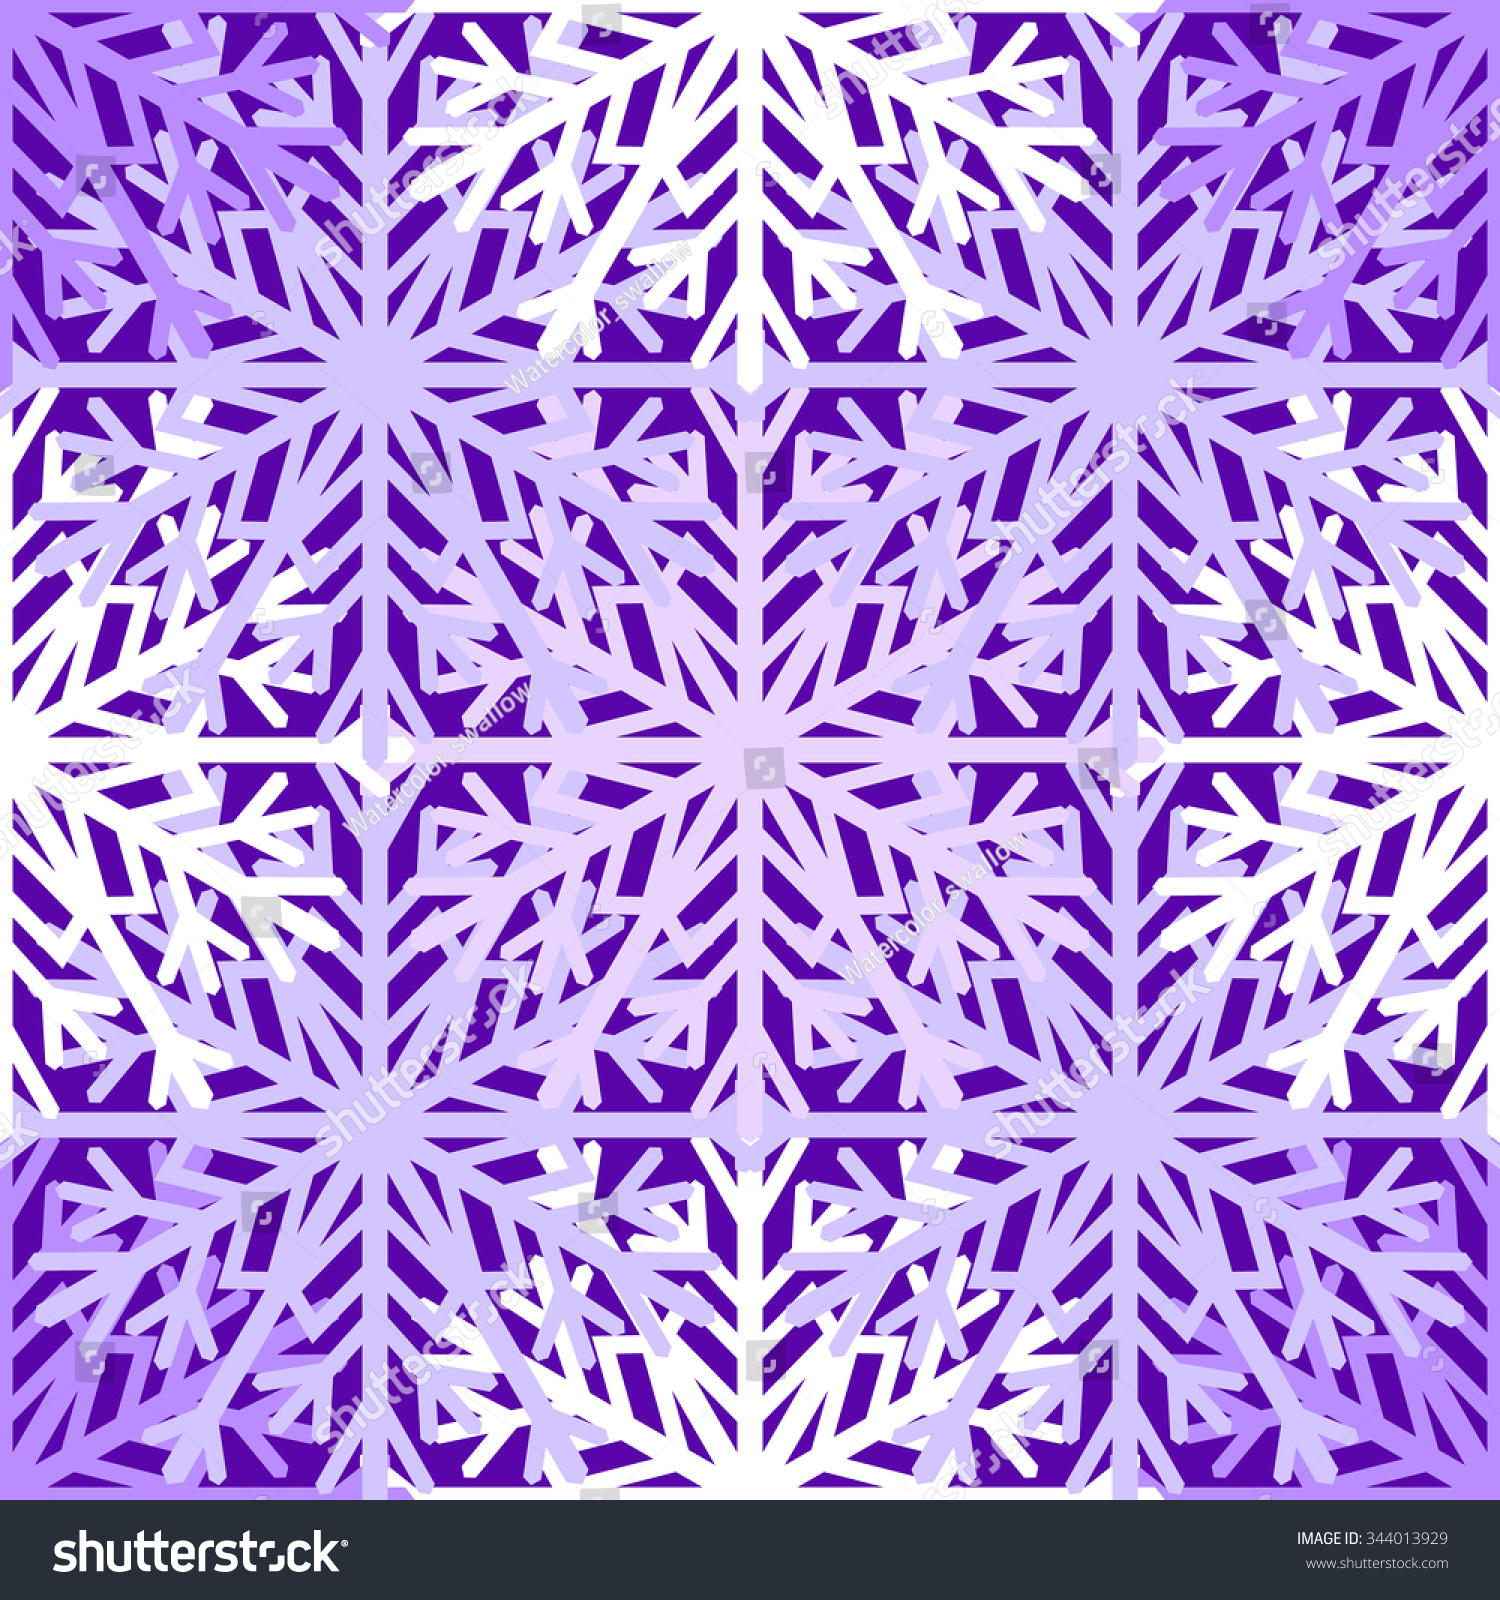 Scrapbook paper designs to print - Seamless Pattern With Hand Drawn Snowflake Template For Wrapping Scrapbook Paper Textile Print